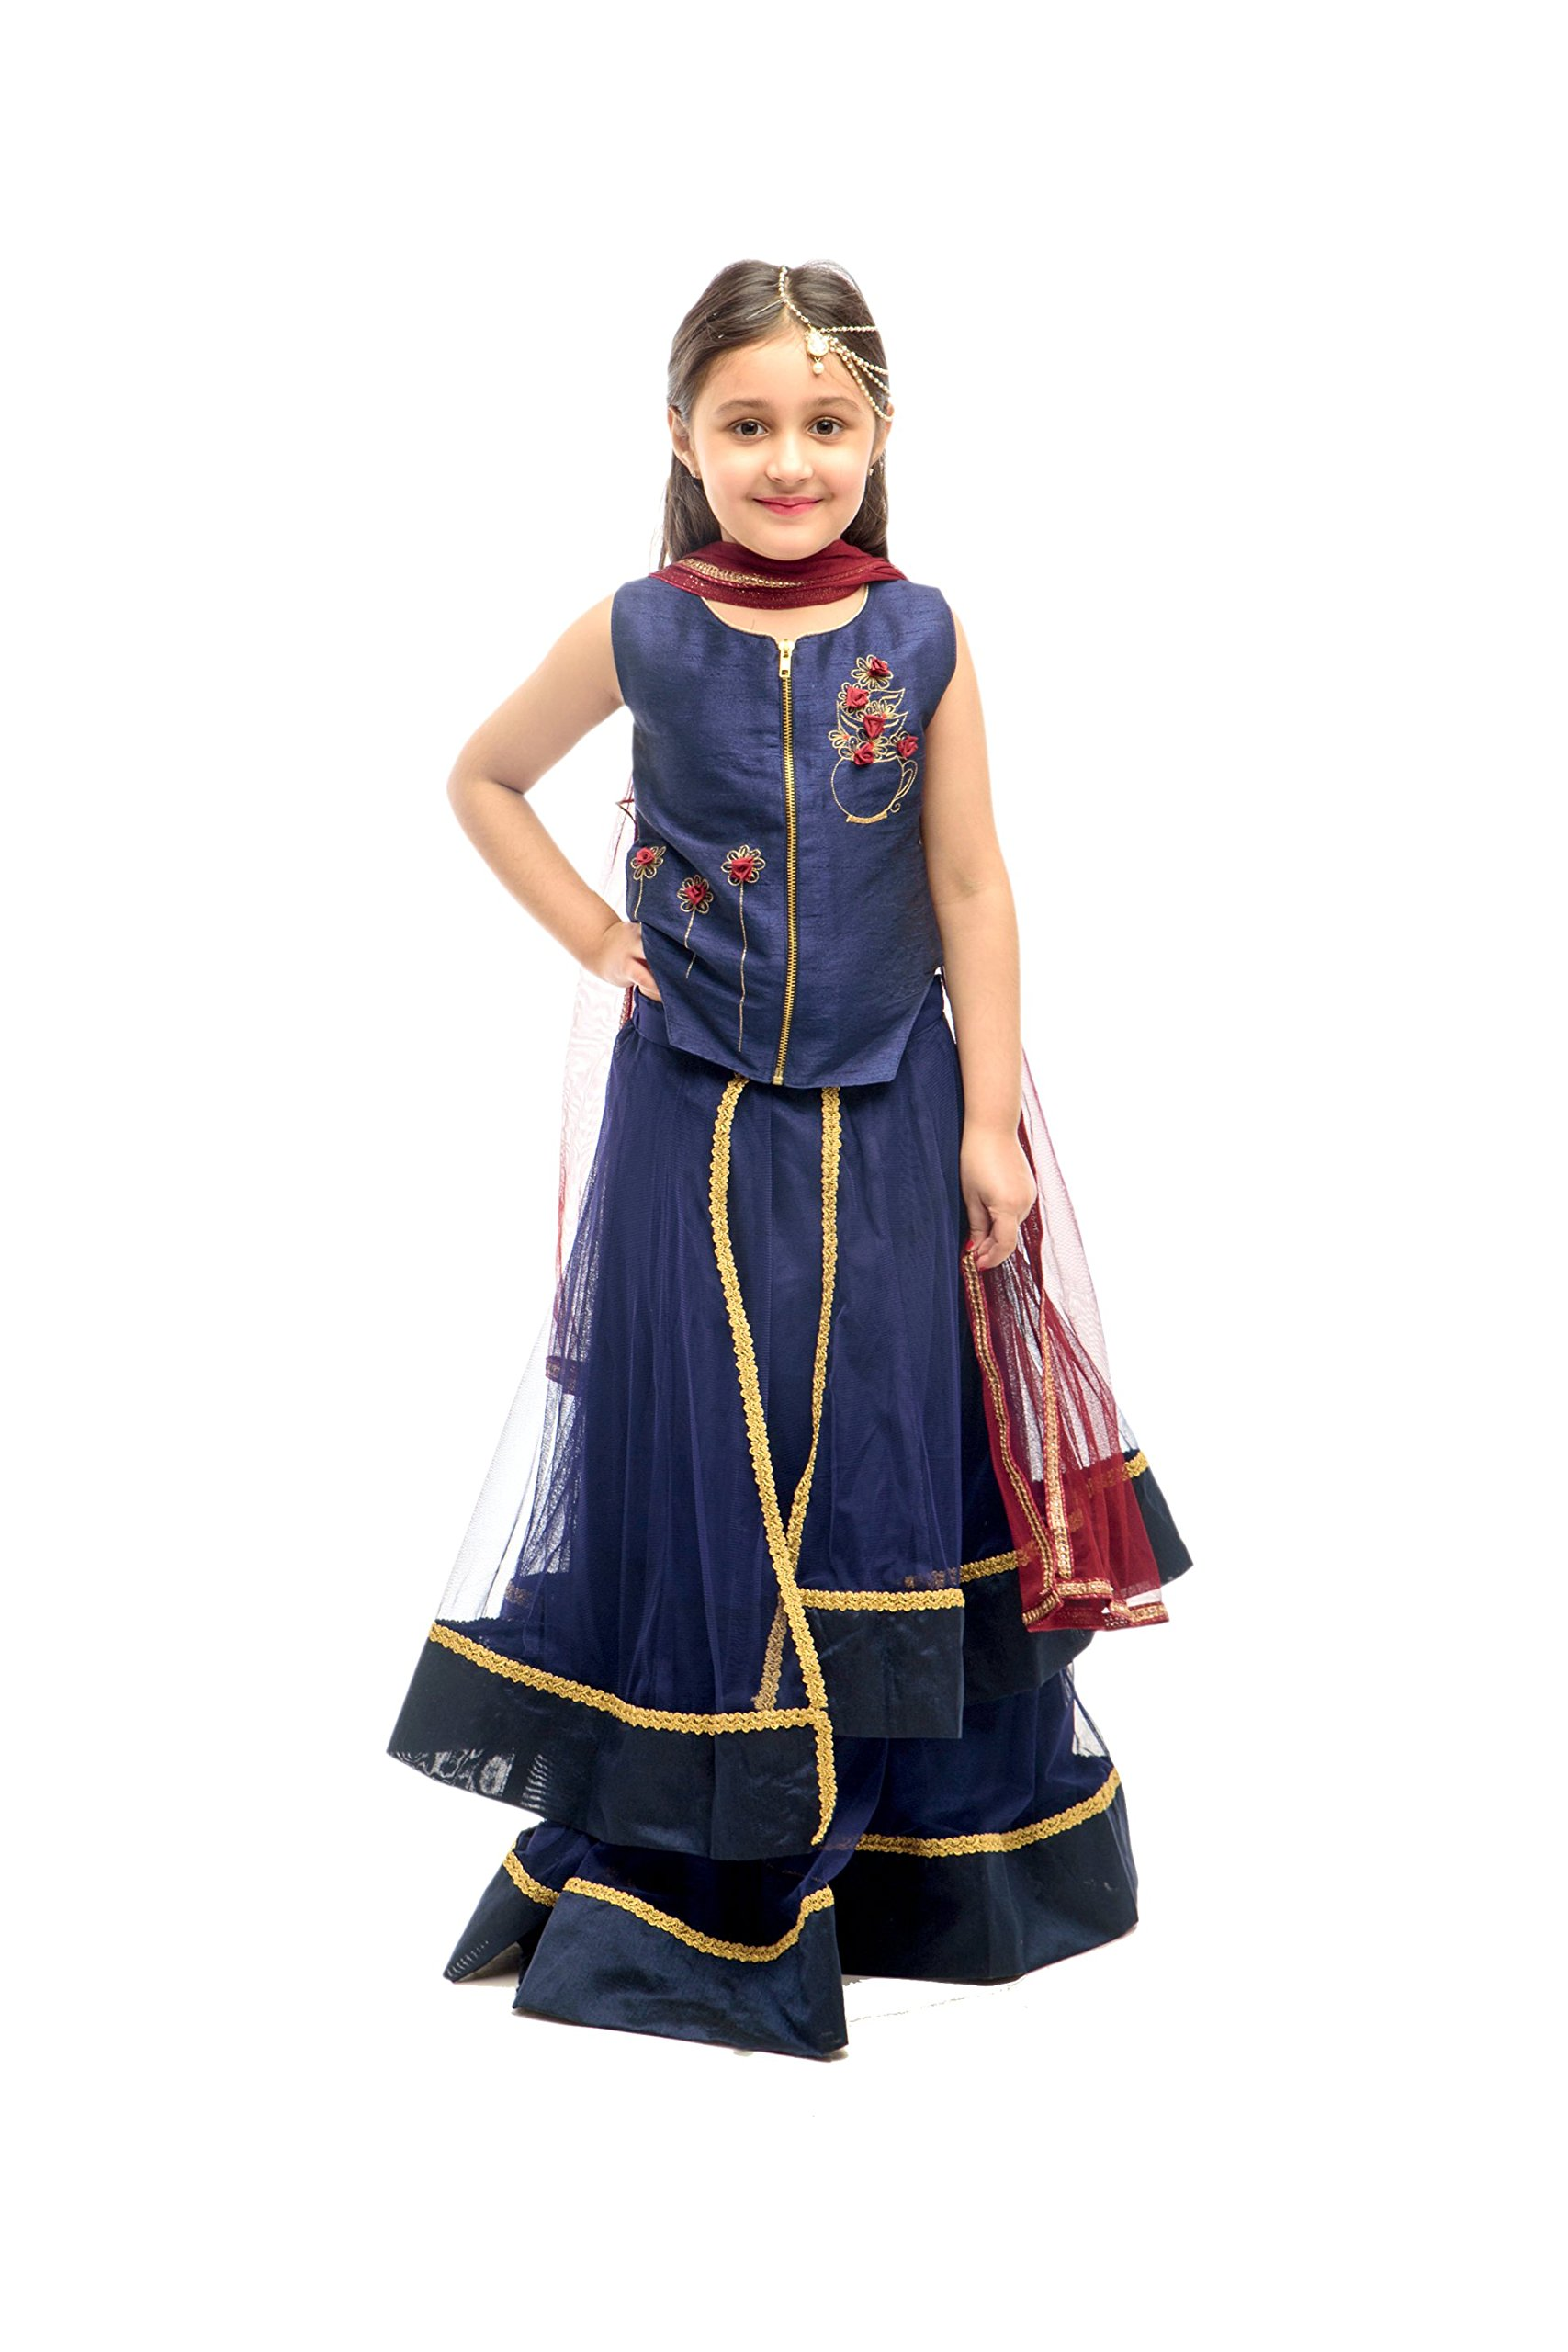 K&U Girls' Blue Layered Net Lehenga with Jacket Style Raw Silk Choli by K&U